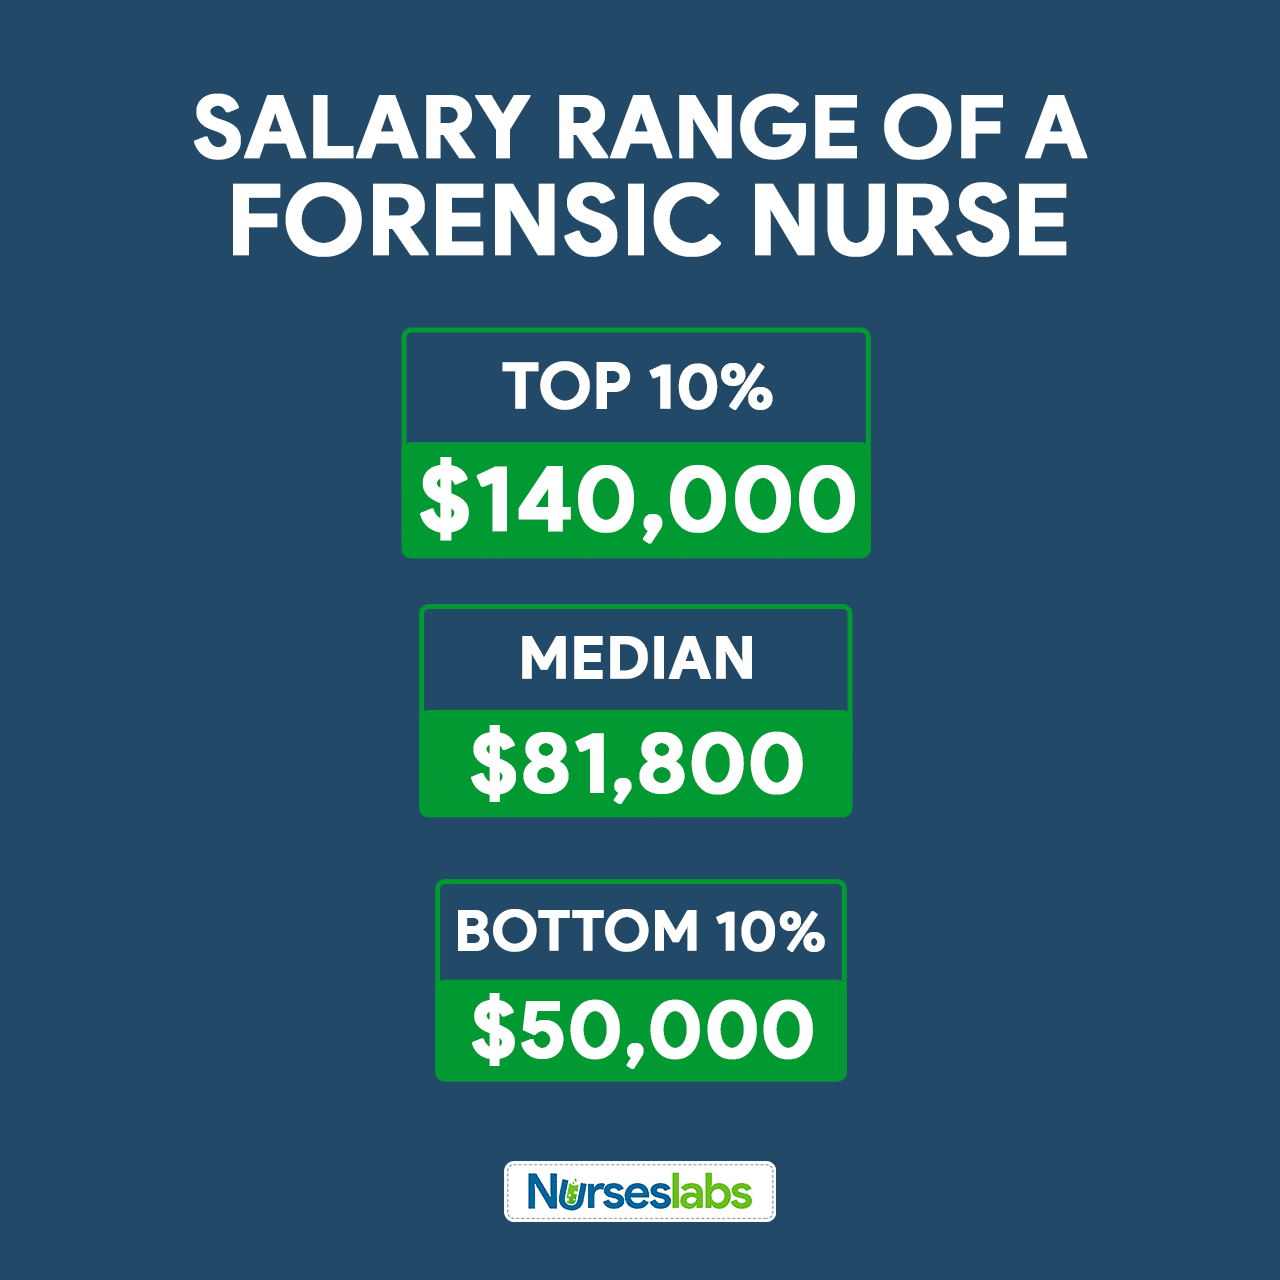 What is the salary range of a forensic nurse?